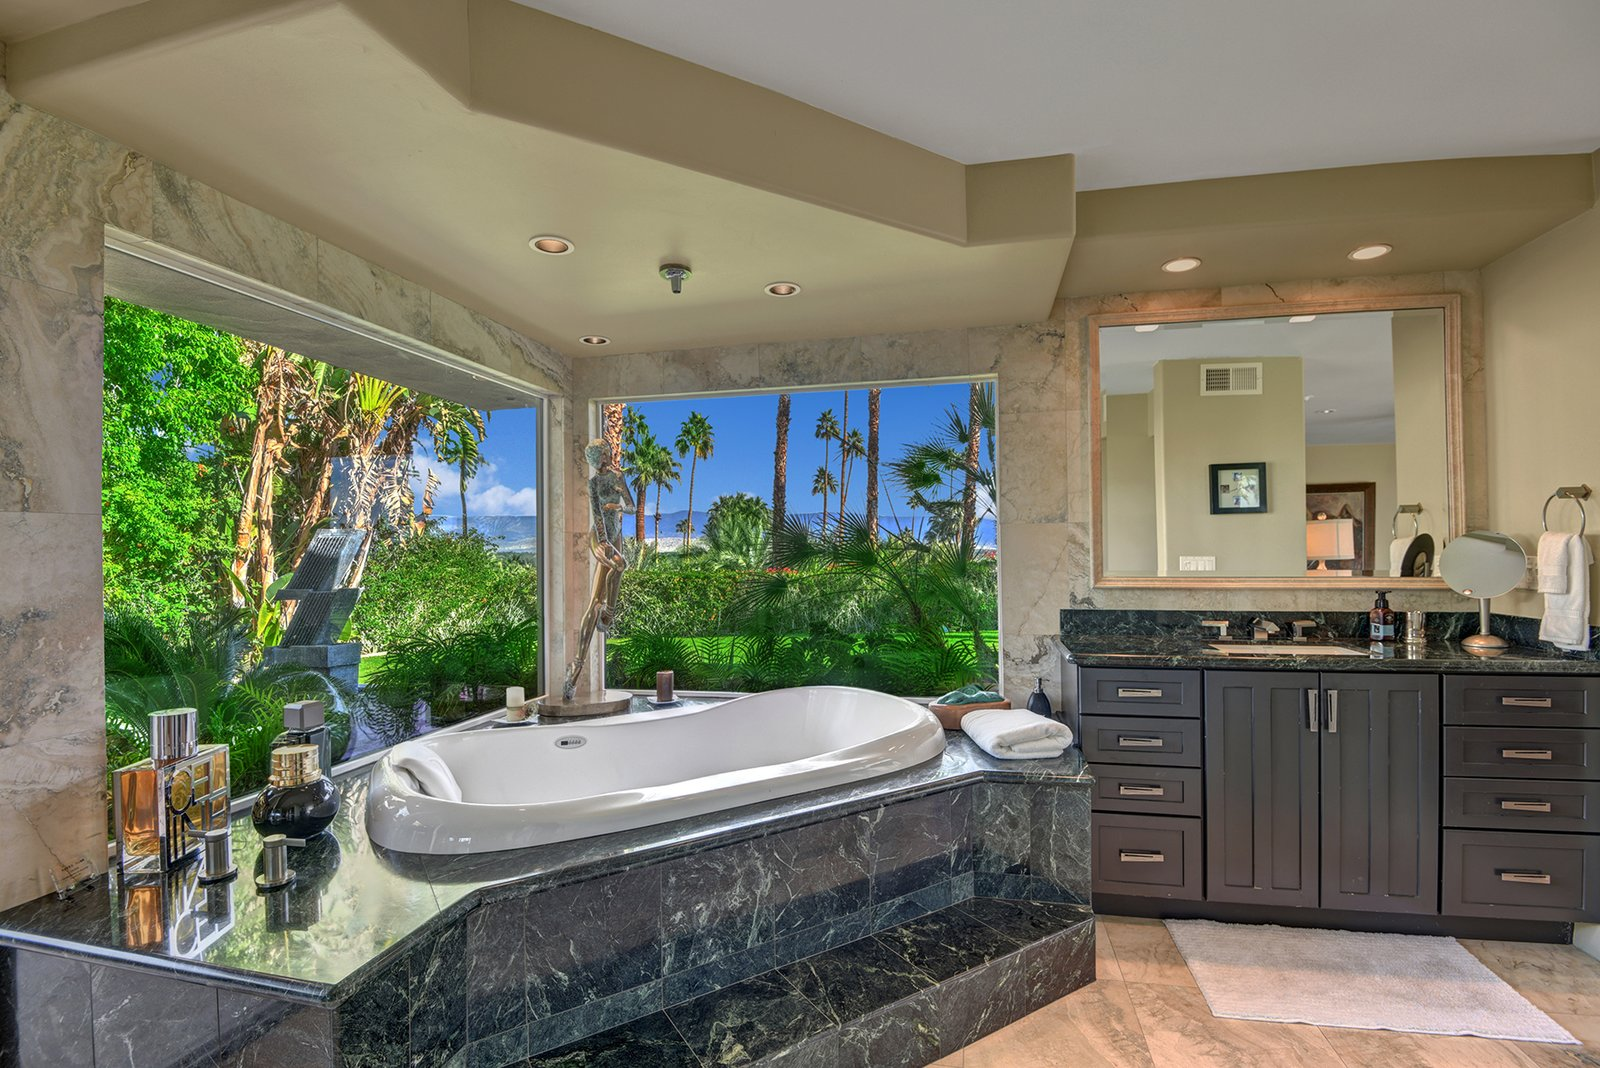 Bing Crosby Rancho Mirage home bathroom